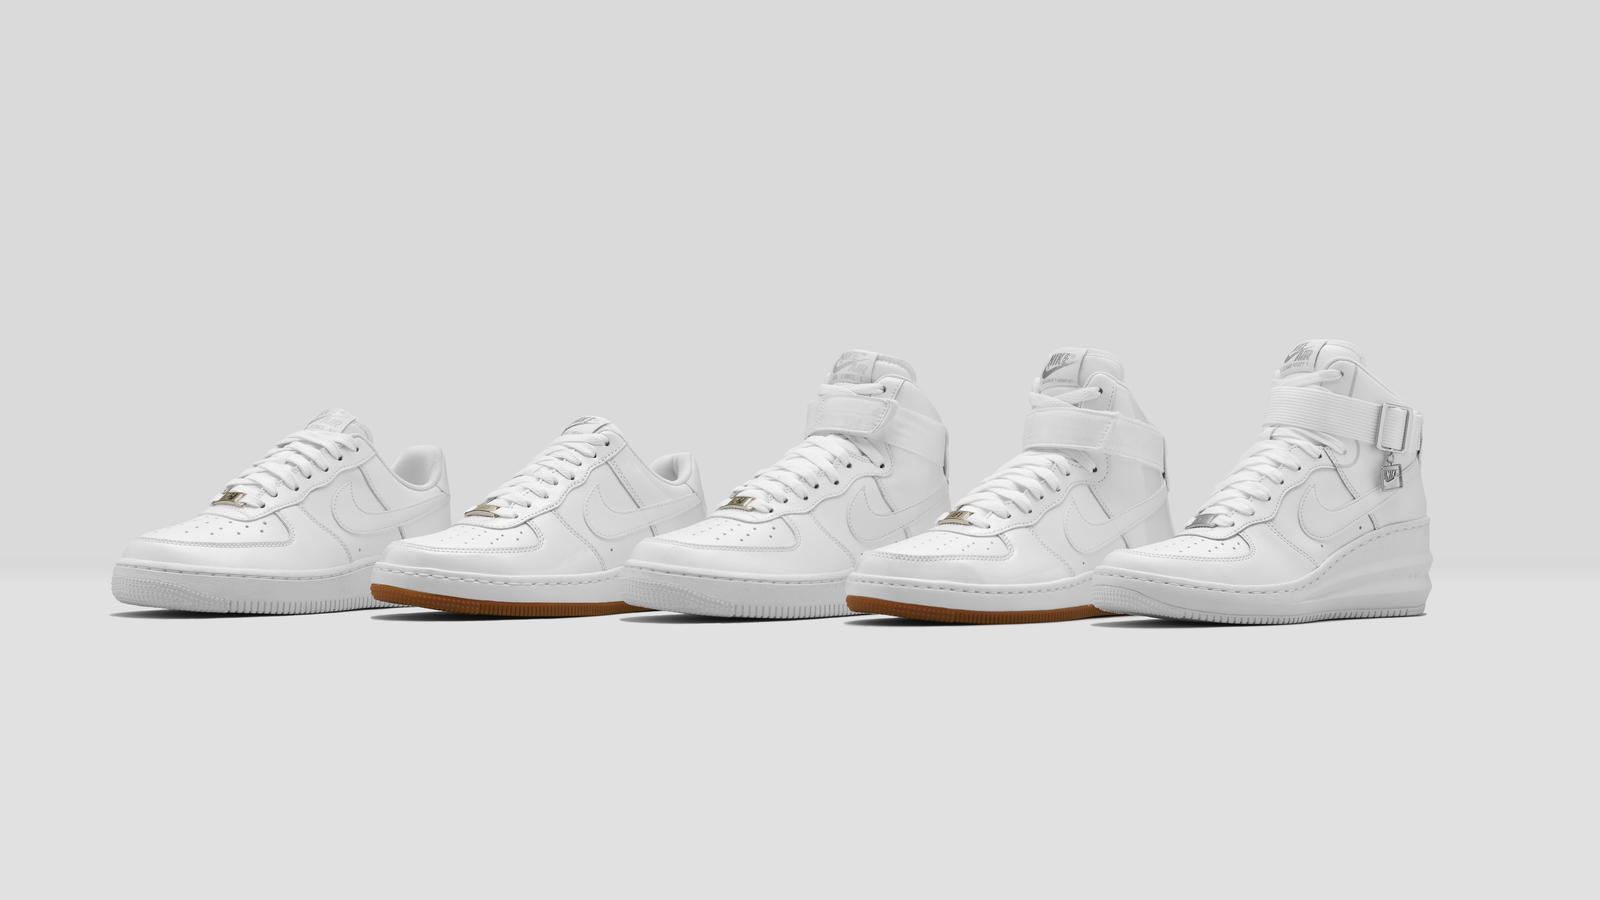 group af1 white. air force 1 ultra mid. air force 1 ultra mid outsole.  lunarforce 1 sky hi. lunarforce 1 sky hi outsole. air force 1 high outsole c69778be6